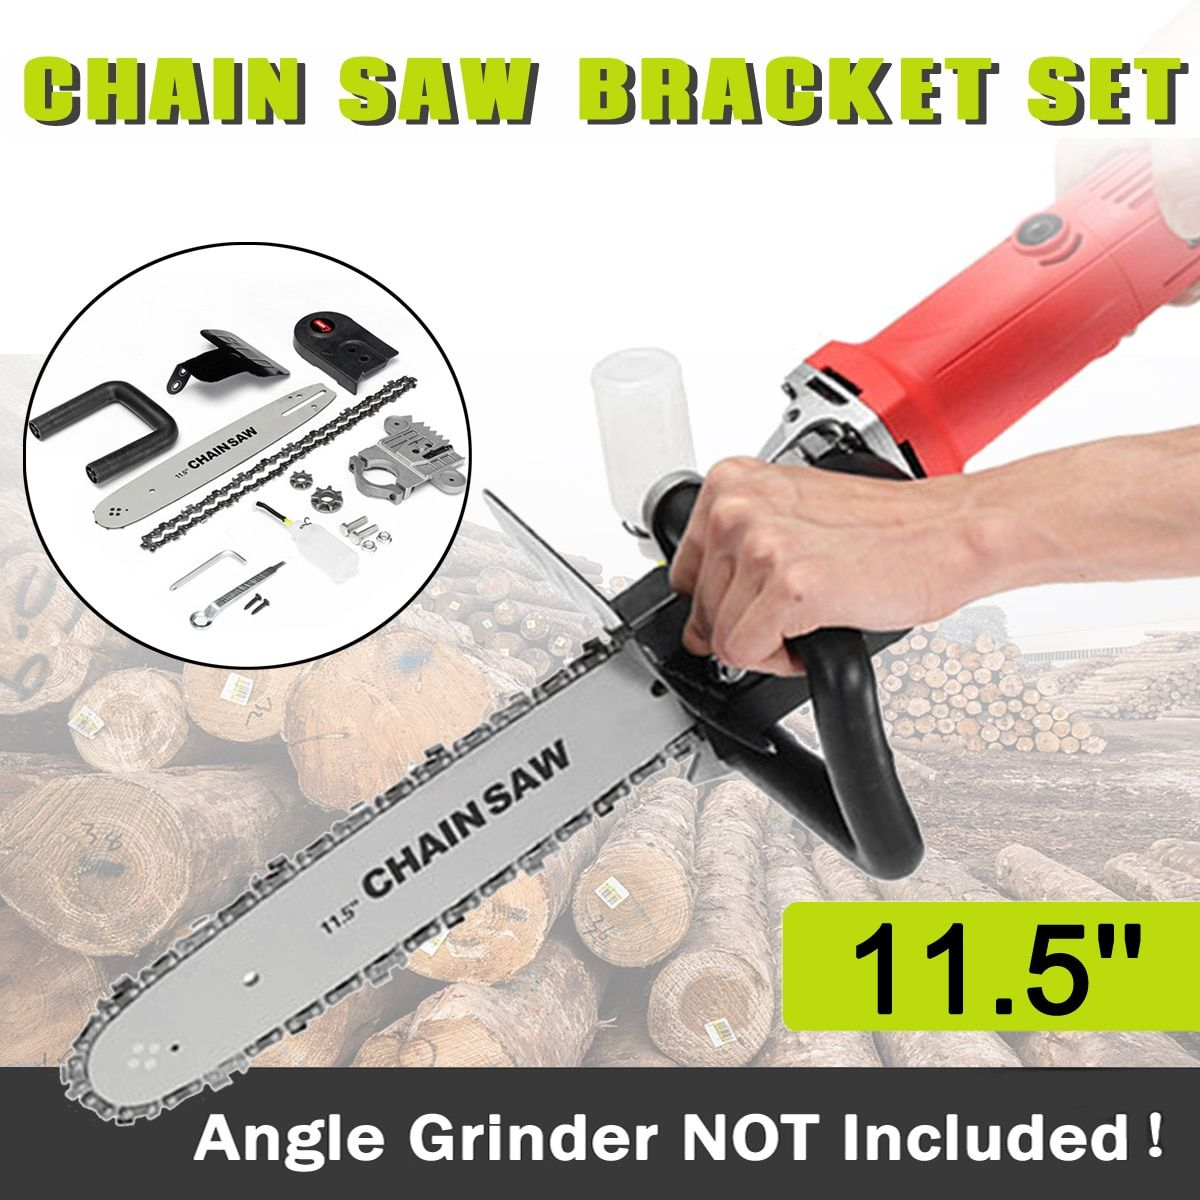 Drillpro Upgrade 11.5 Inch Chainsaw Bracket <font><b>Changed</b></font> 100 125 150 Angle Grinder M10/M14 Into Chain Saw Woodworking Tool